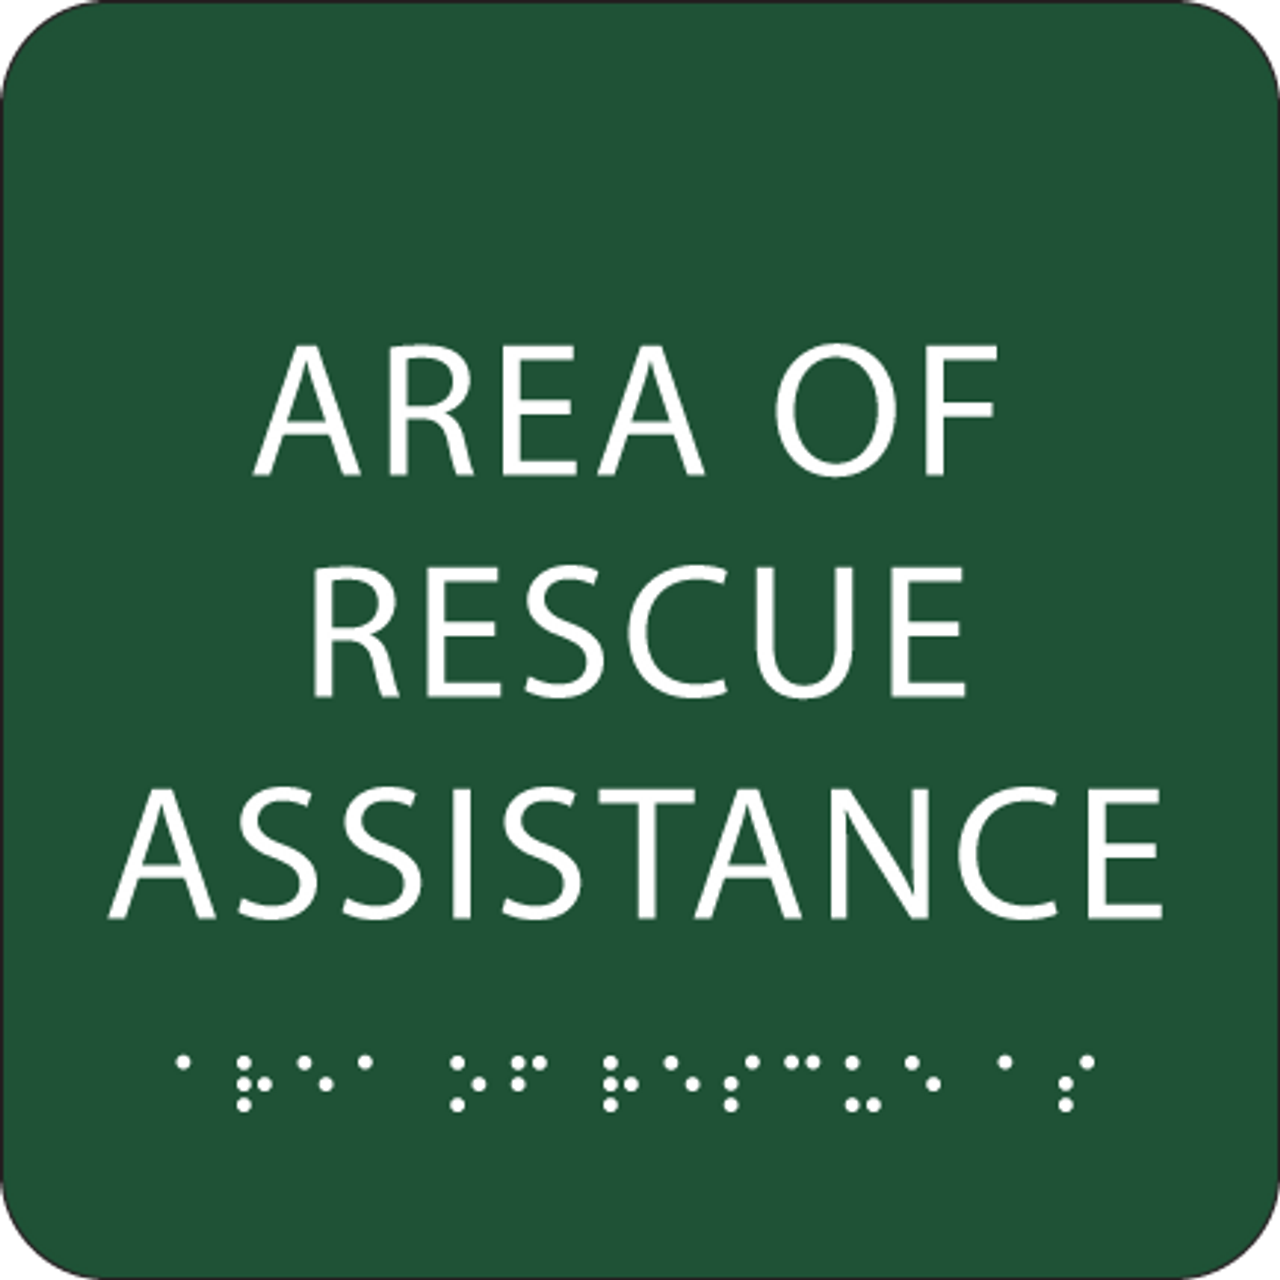 Greey Area of Rescue Assistance Tactile Sign